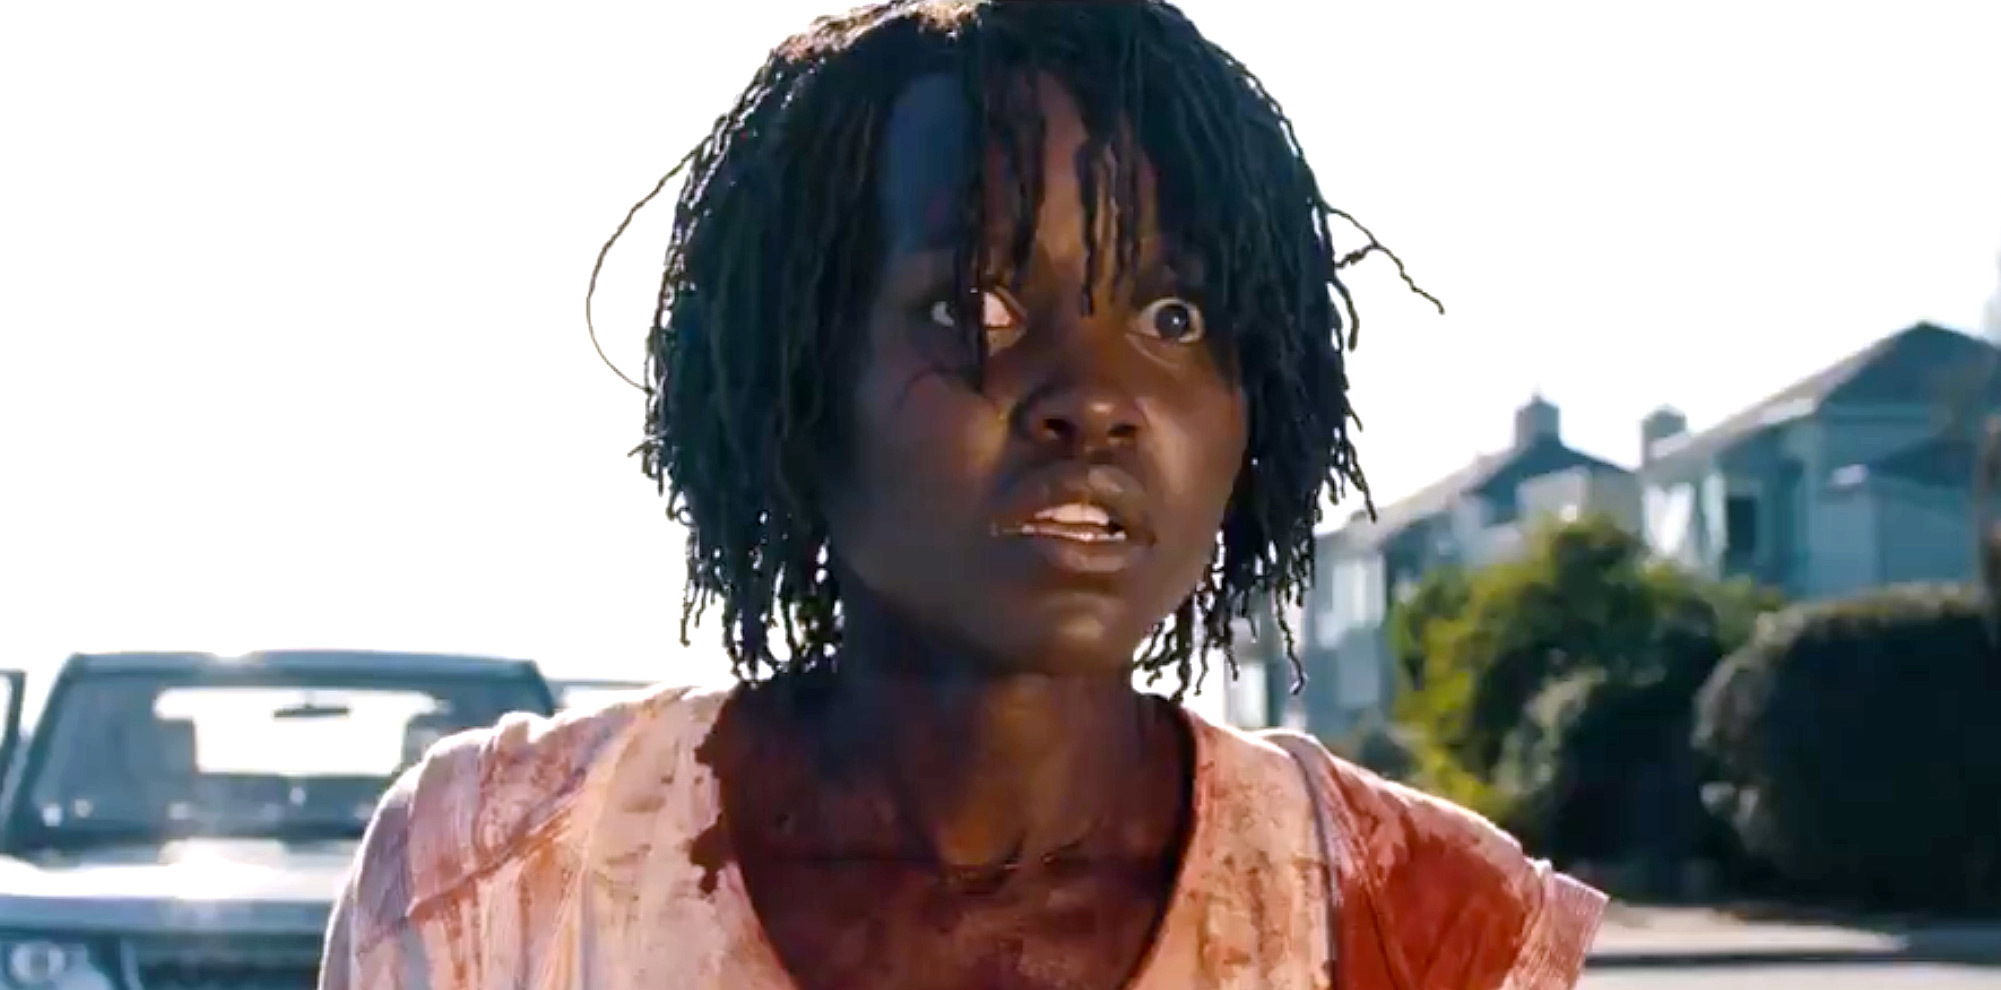 Jordan Peele, Us, 2019, 4k video, color, sound, 116 minutes. Adelaide Wilson (Lupita Nyong'o).